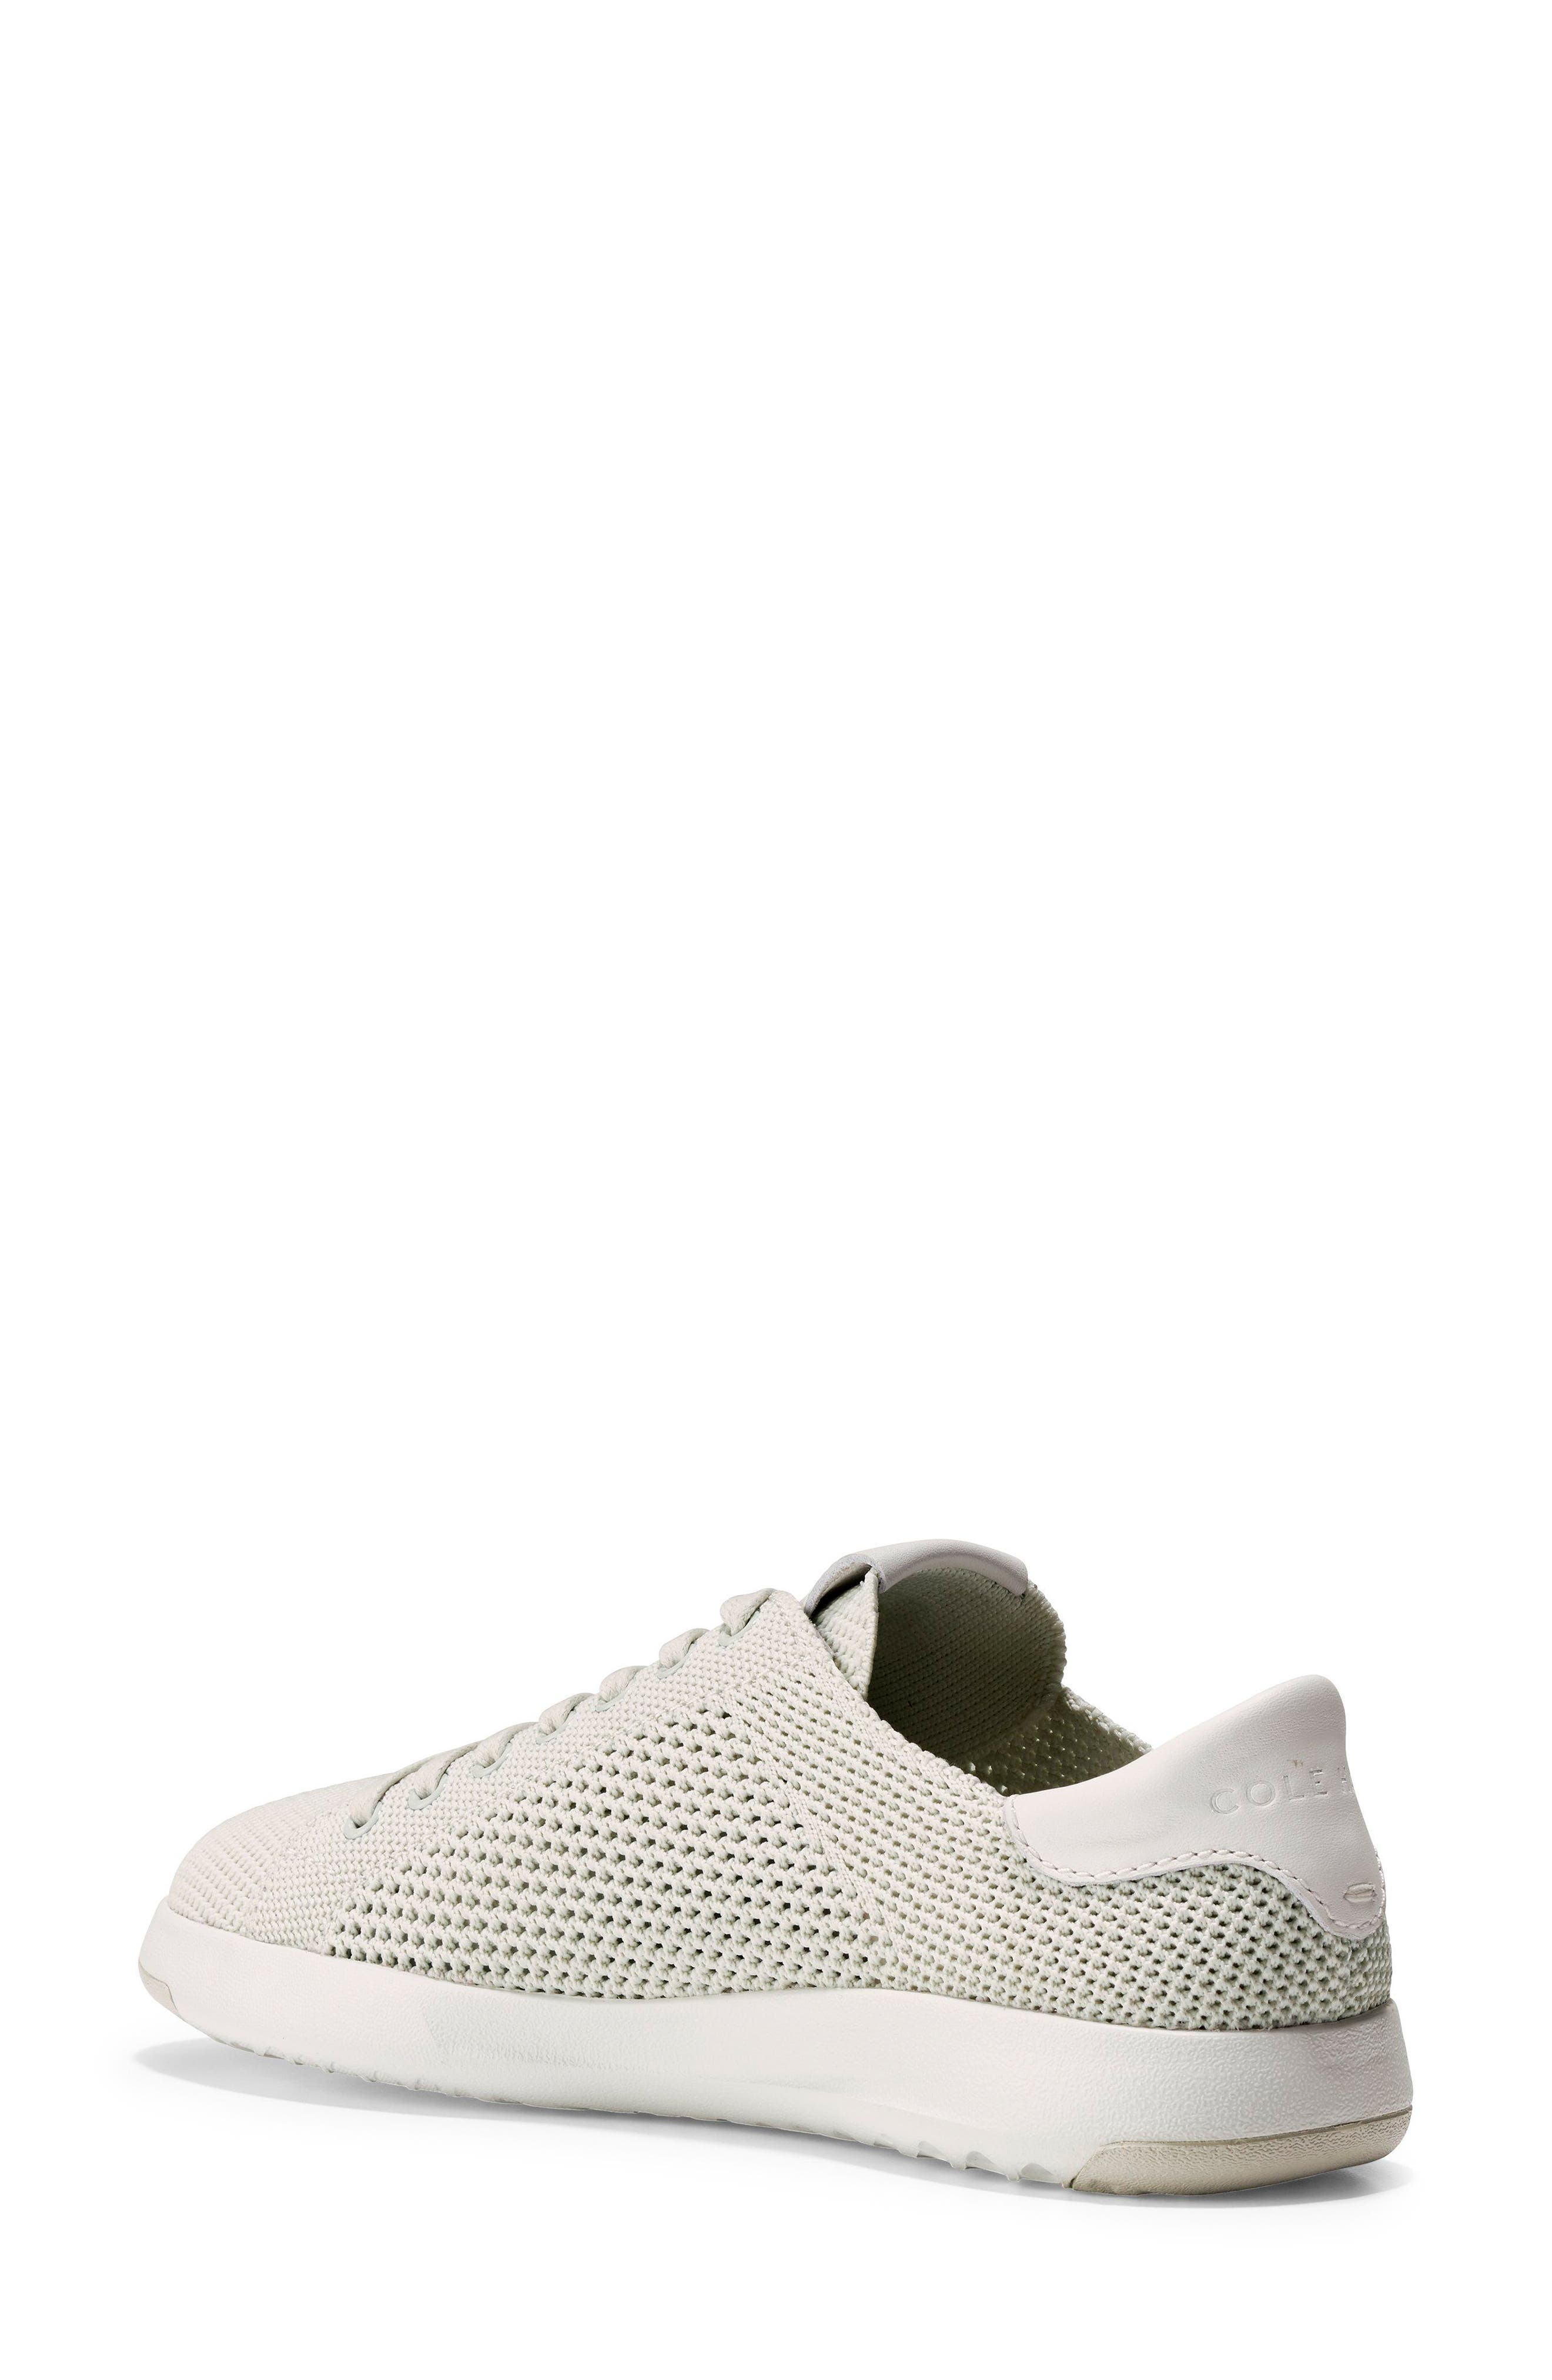 COLE HAAN, GrandPro Stitchlite Sneaker, Alternate thumbnail 2, color, CHALK FABRIC